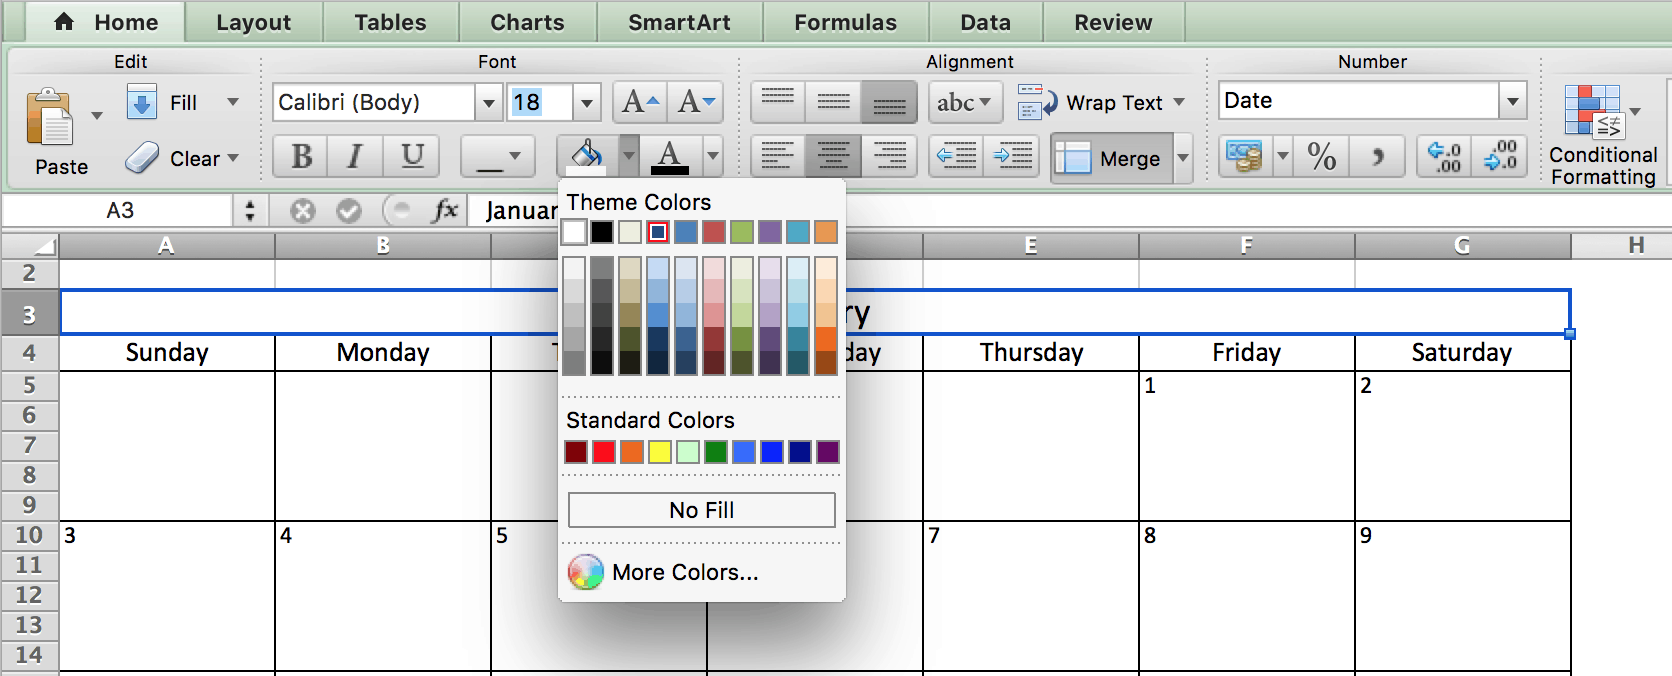 Ediblewildsus  Marvellous Make A  Calendar In Excel Includes Free Template With Goodlooking Choosing Colors  Calendar In Excel With Alluring Excel Advanced Tutorial Also Free Gantt Chart Template For Excel In Addition Excel V And Project Management Dashboard Excel As Well As Excel Duplicate Rows Additionally Standard Deviation Excel Graph From Smartsheetcom With Ediblewildsus  Goodlooking Make A  Calendar In Excel Includes Free Template With Alluring Choosing Colors  Calendar In Excel And Marvellous Excel Advanced Tutorial Also Free Gantt Chart Template For Excel In Addition Excel V From Smartsheetcom